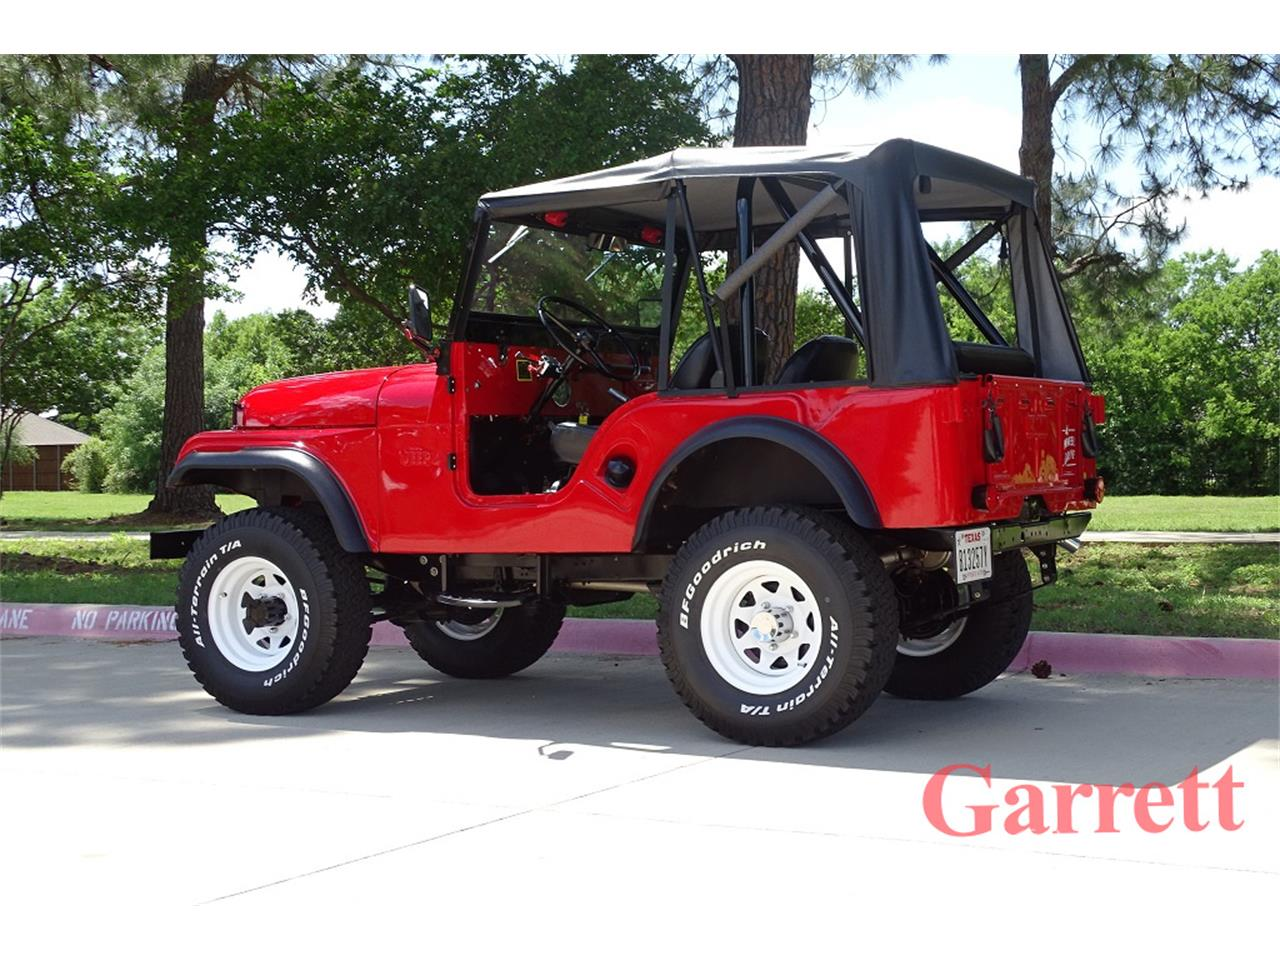 Large Picture of 1964 Jeep located in Lewisville TEXAS (TX) - Q4KI